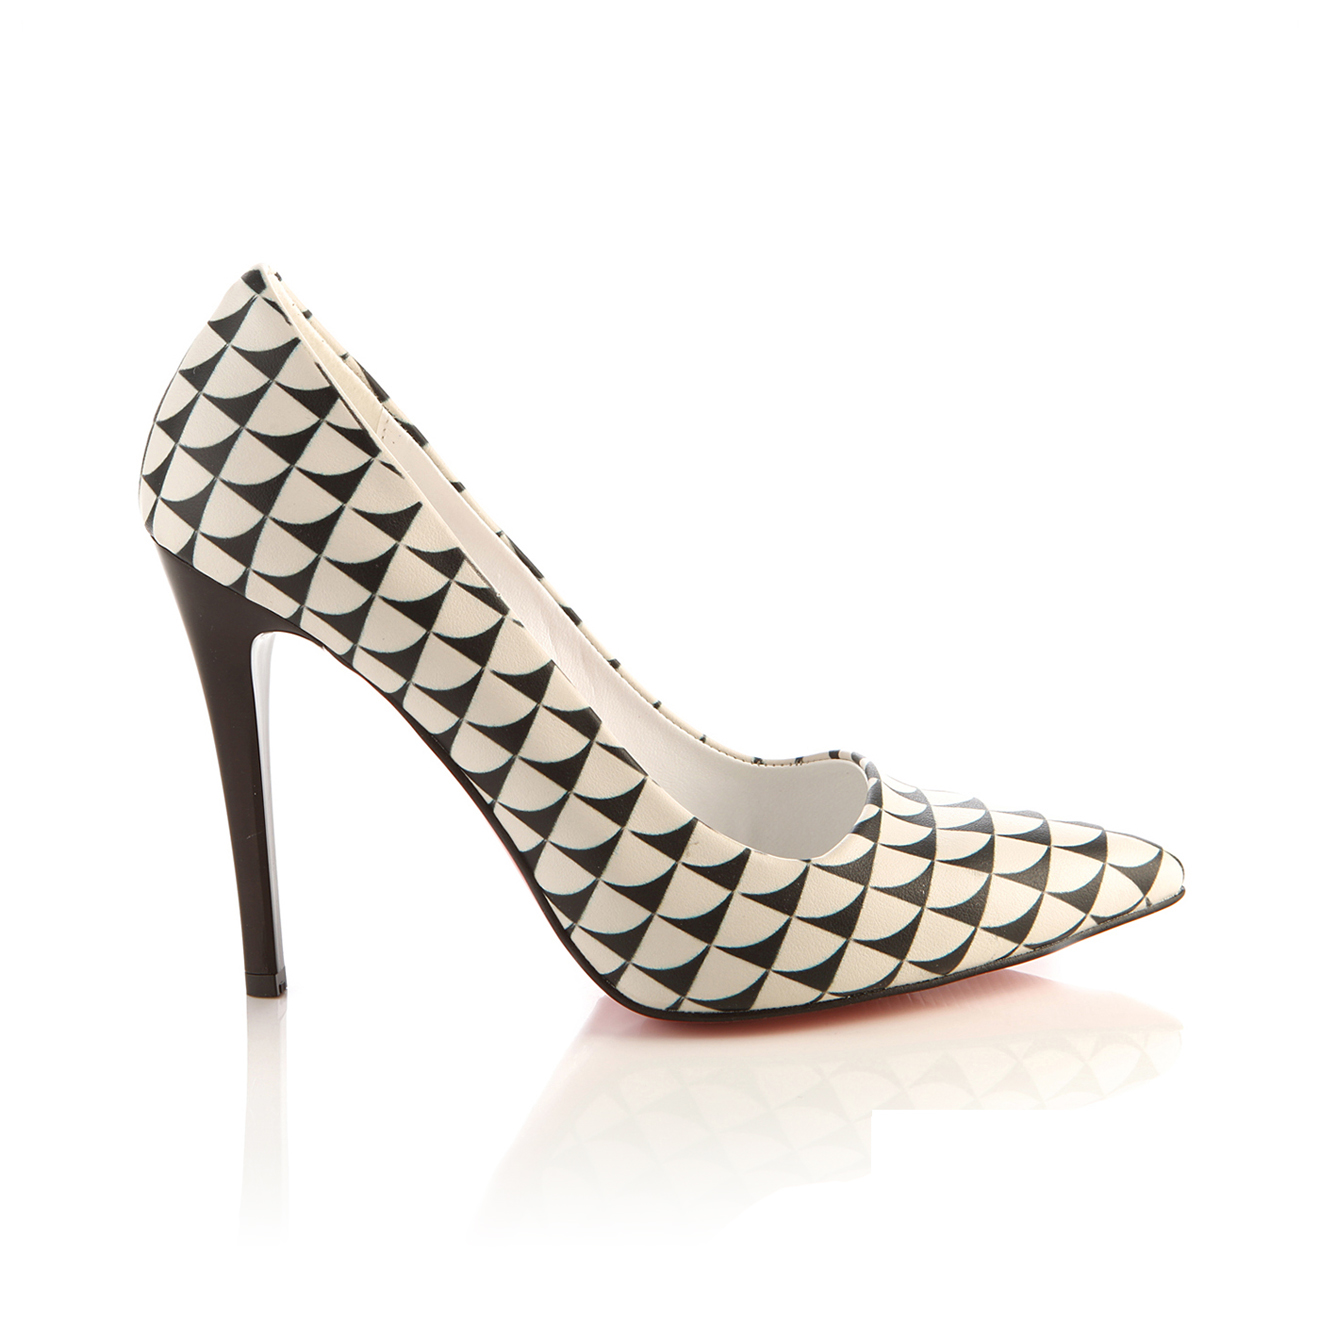 Escarpins Pumps noir/blanc Talon 10 cm